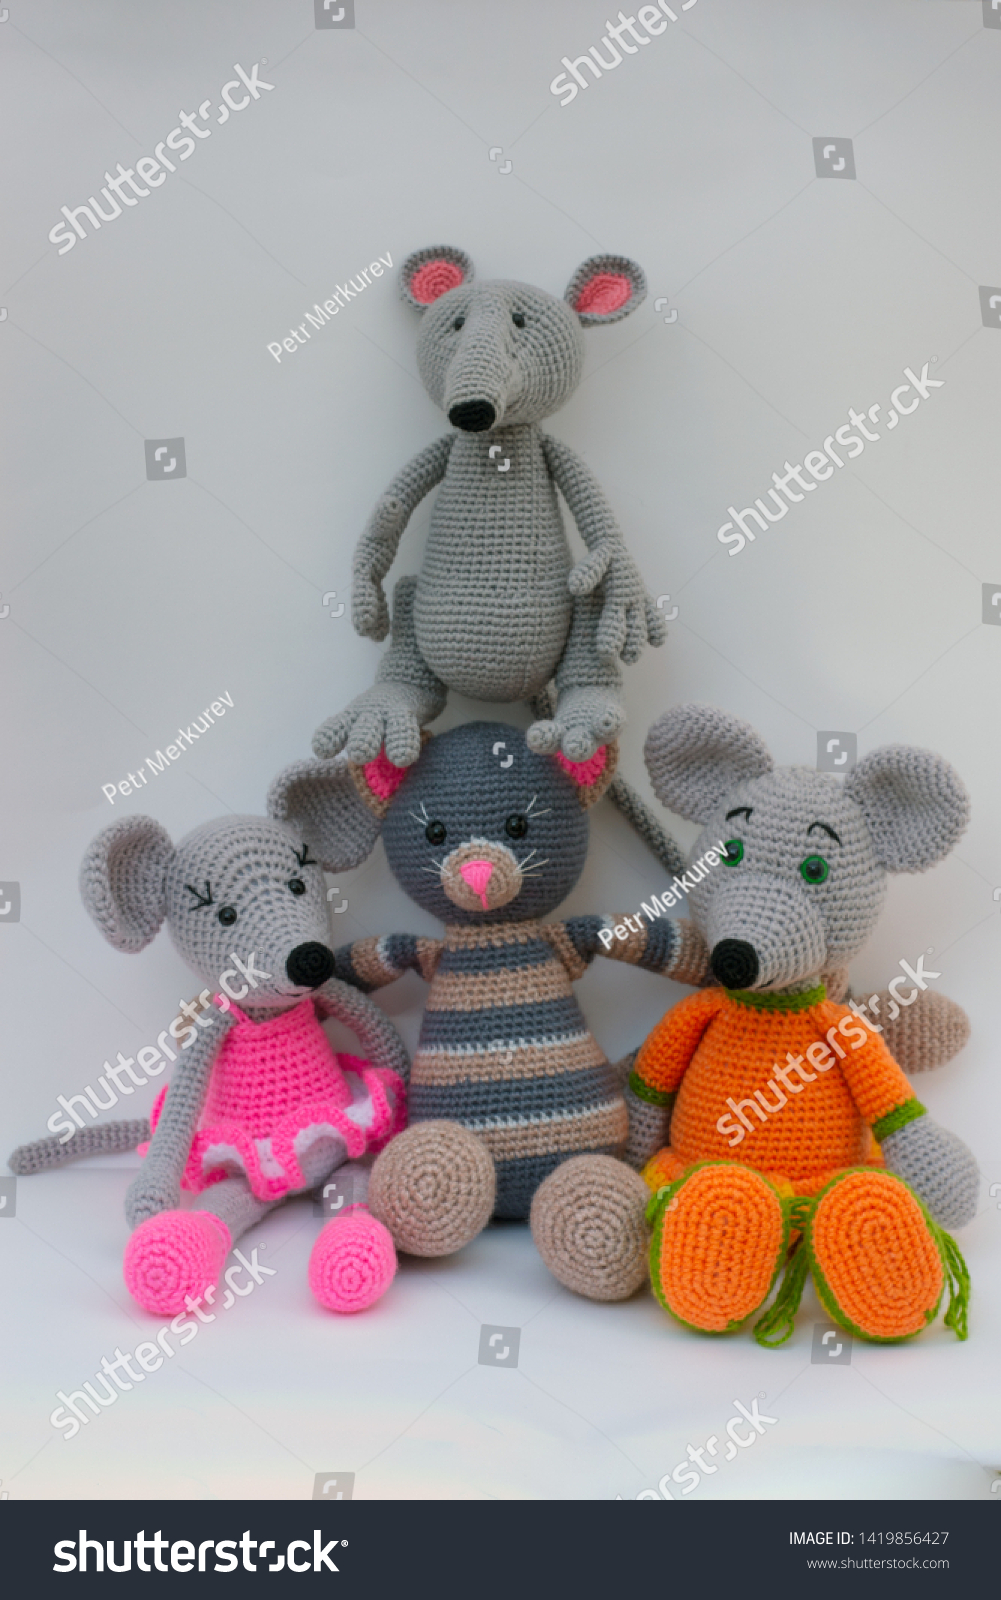 11 Free Crochet Mouse Patterns For Beginners | 1600x1001